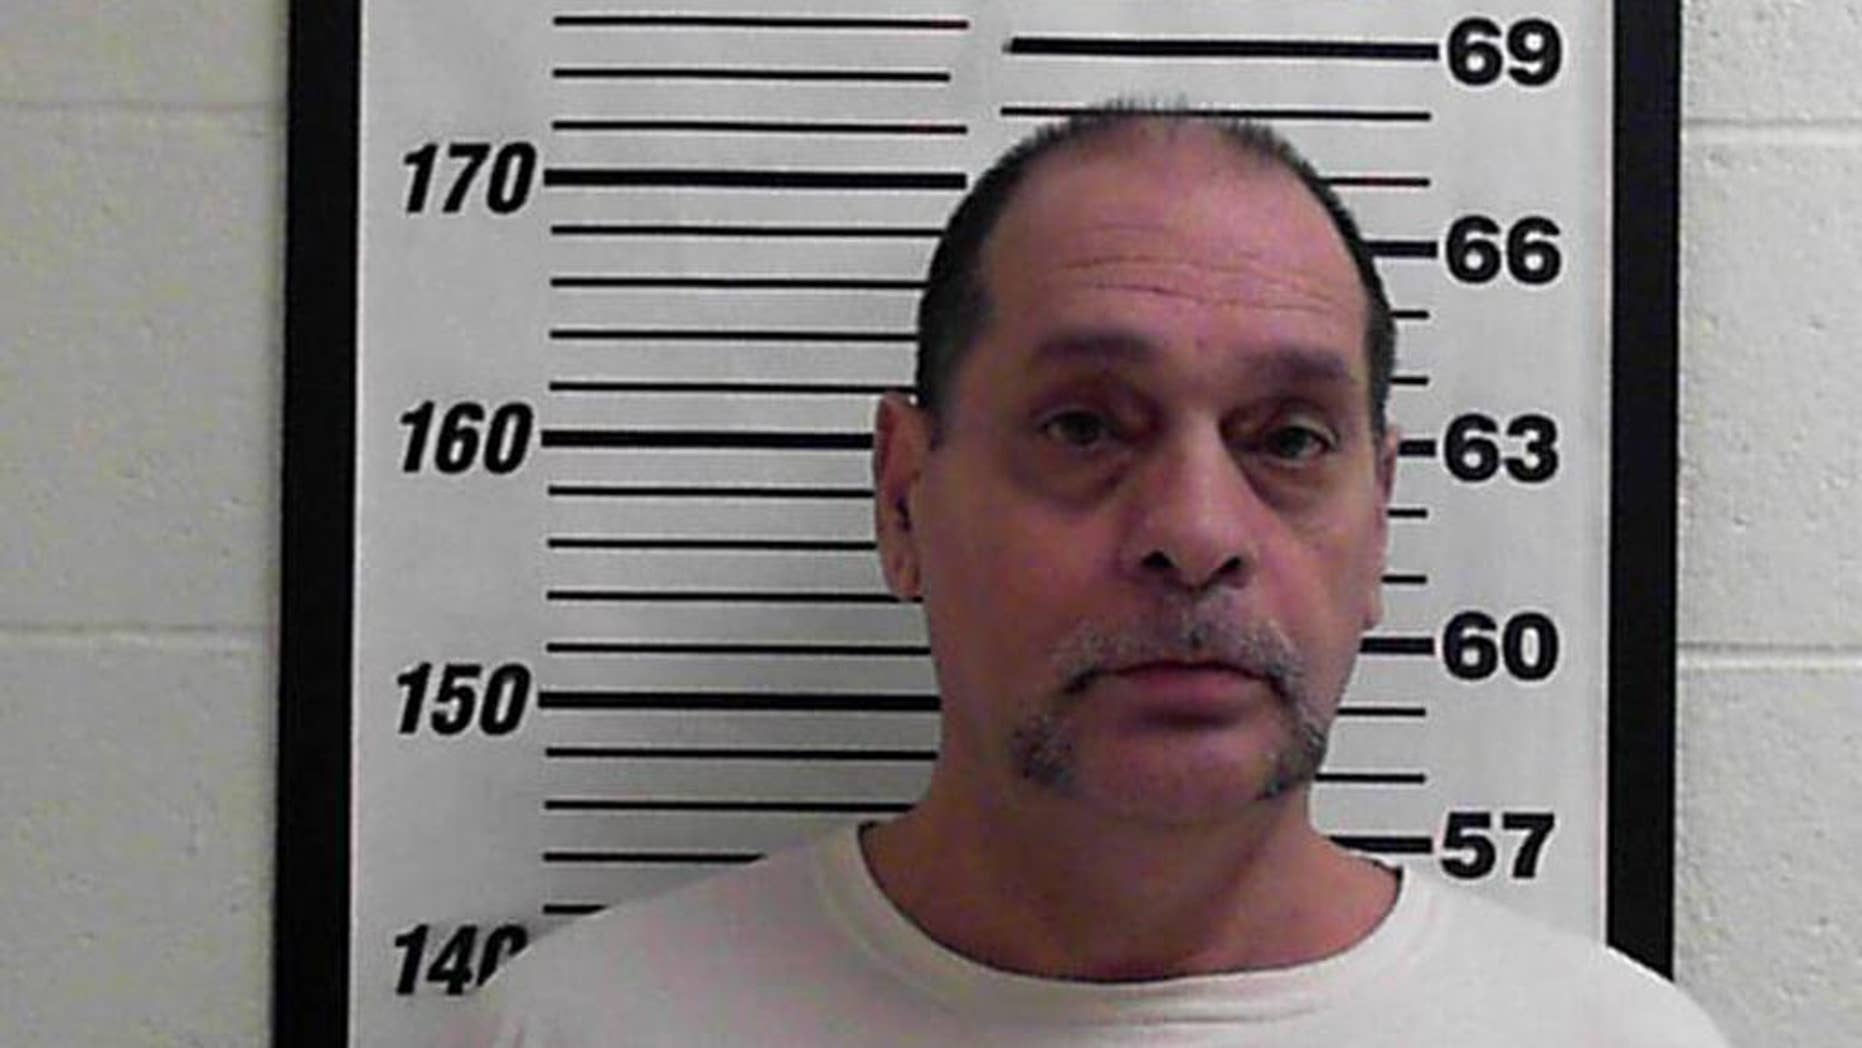 In this photo released by the Davis County Jail shows Timothy Jay Vafeades. Prosecutors say they've found four more victims of Vafeades, a Utah truck driver accused of keeping women as sex slaves in his semitrailer as he traveled the county. Some of the new accusations against Vafeades date back 20 years. In two of the new cases detailed in court documents filed Monday, Nov. 10, 2014, Vafeades is accused of holding women as prisoners for months. (AP Photo/Davis County Jail)